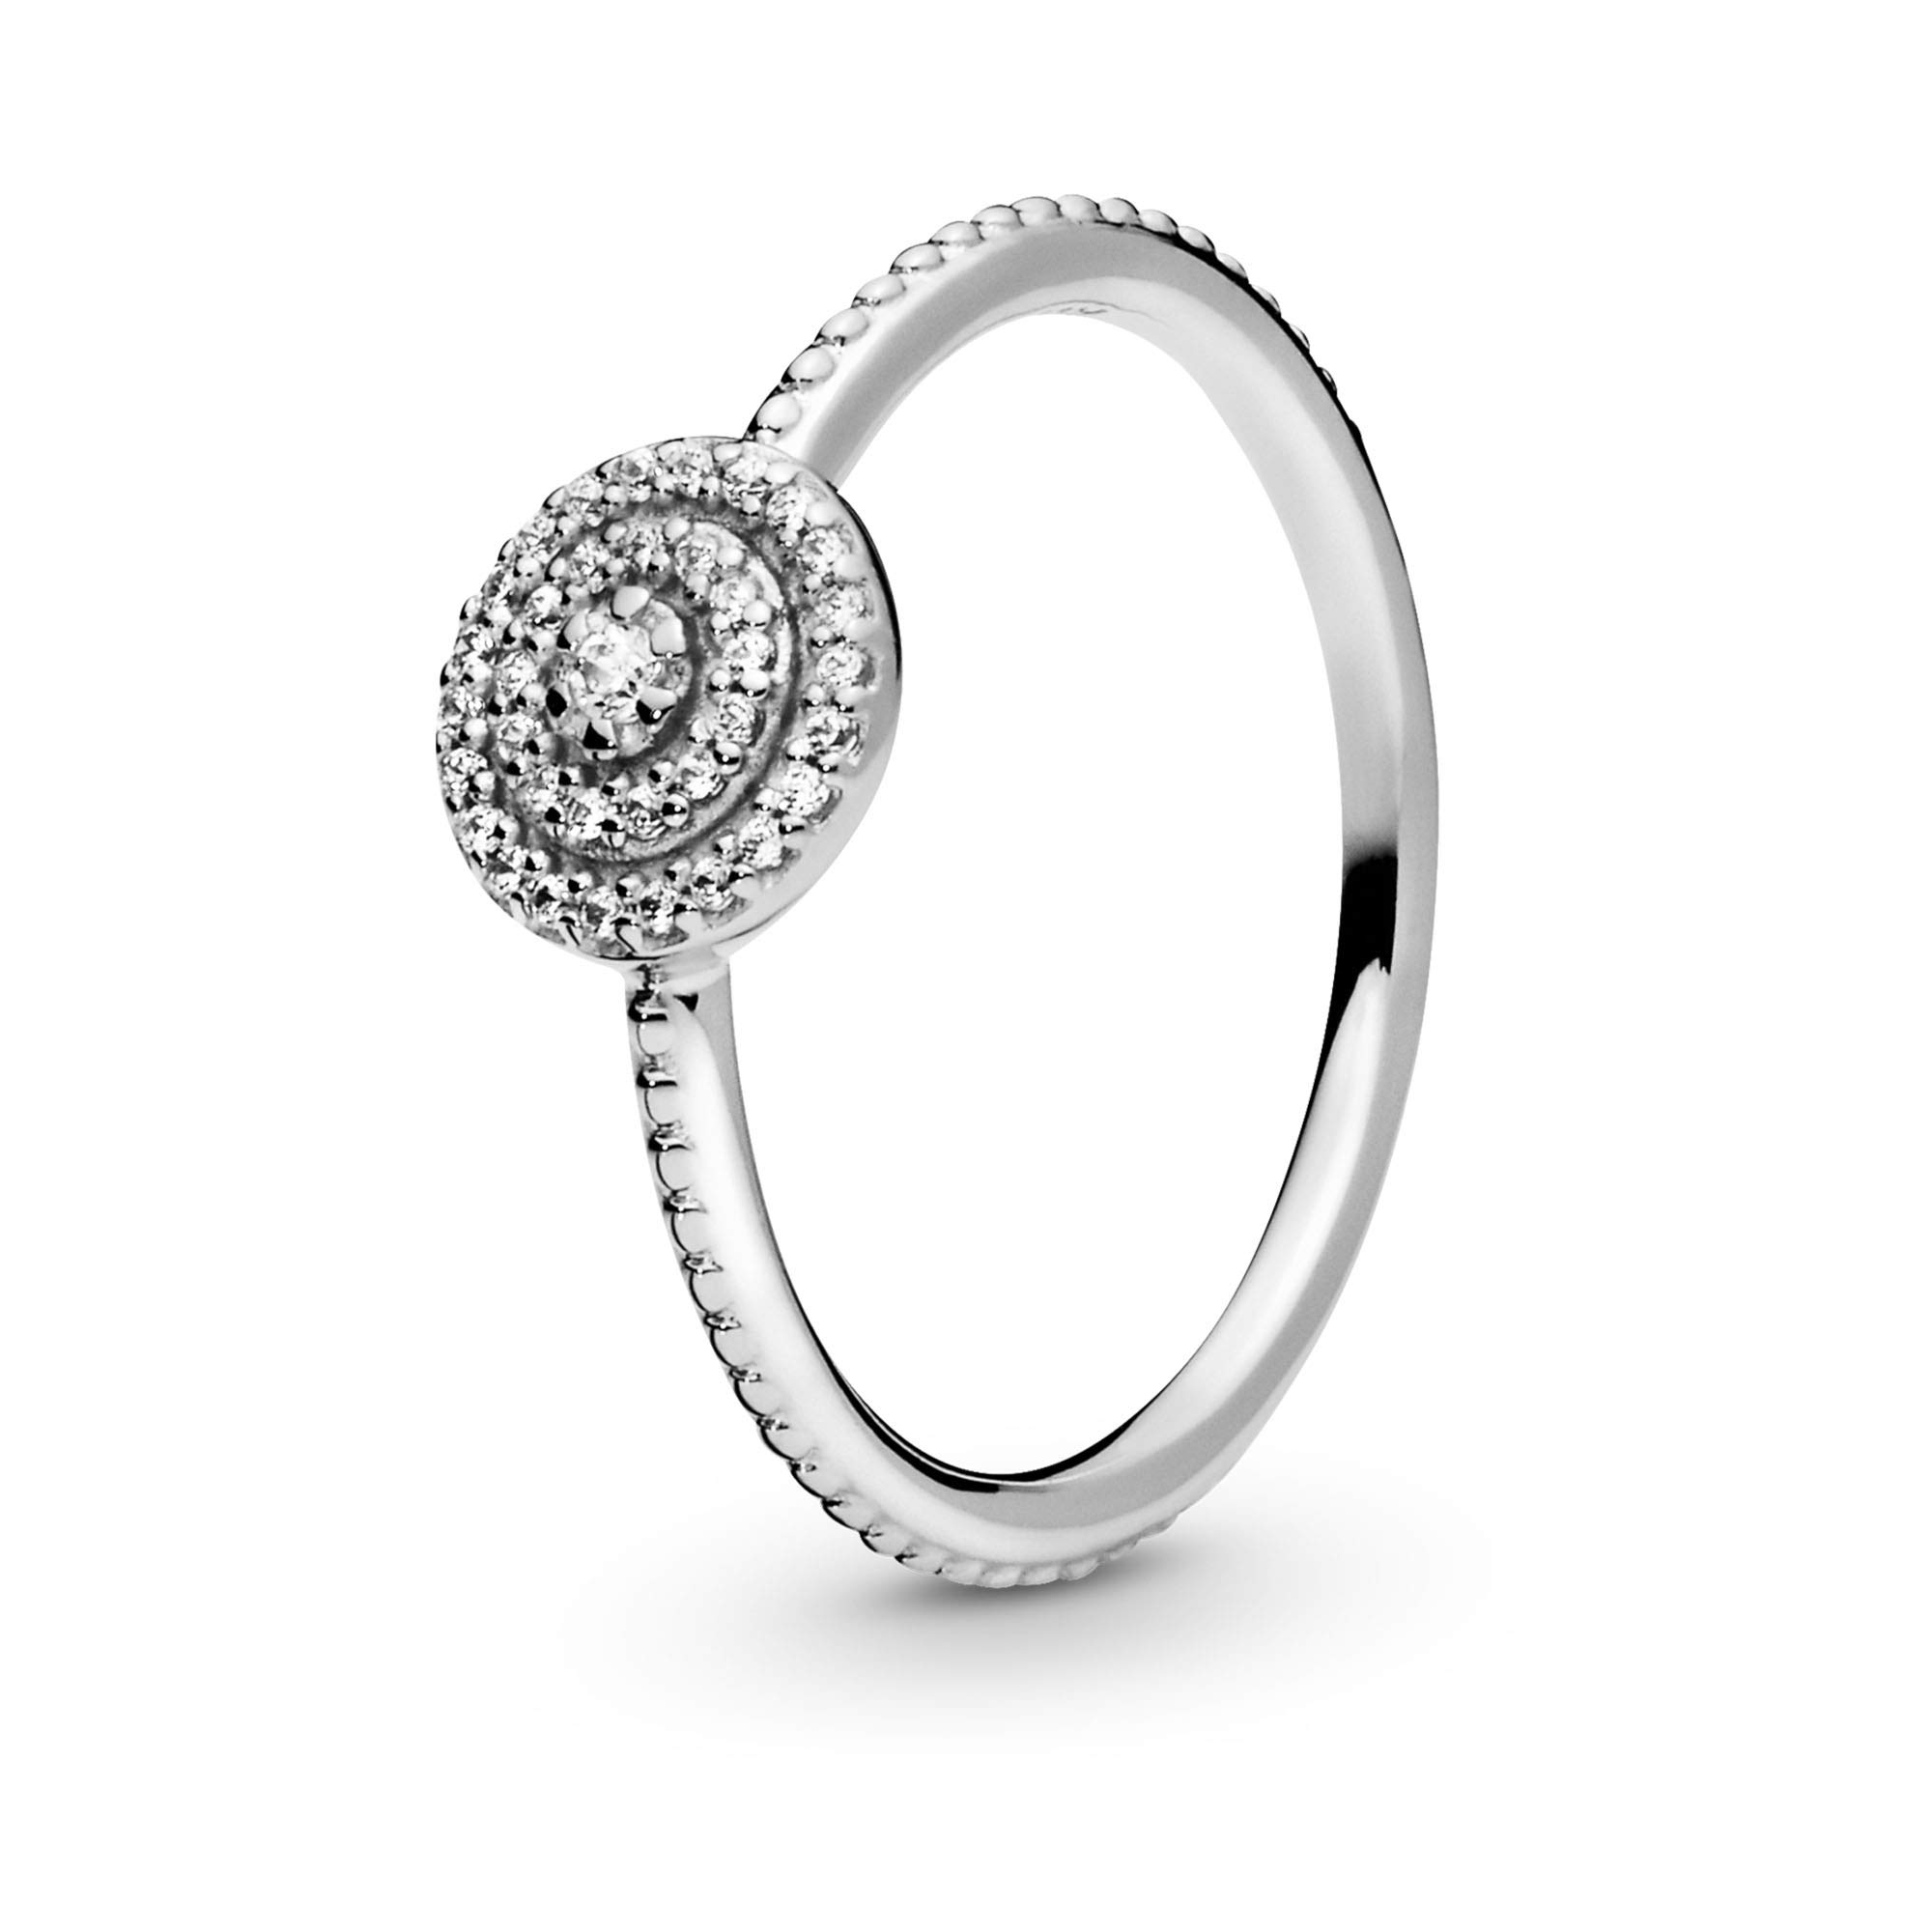 Pandora Jewelry Elegant Sparkle Cubic Zirconia Ring in Sterling Silver, Size 7.5